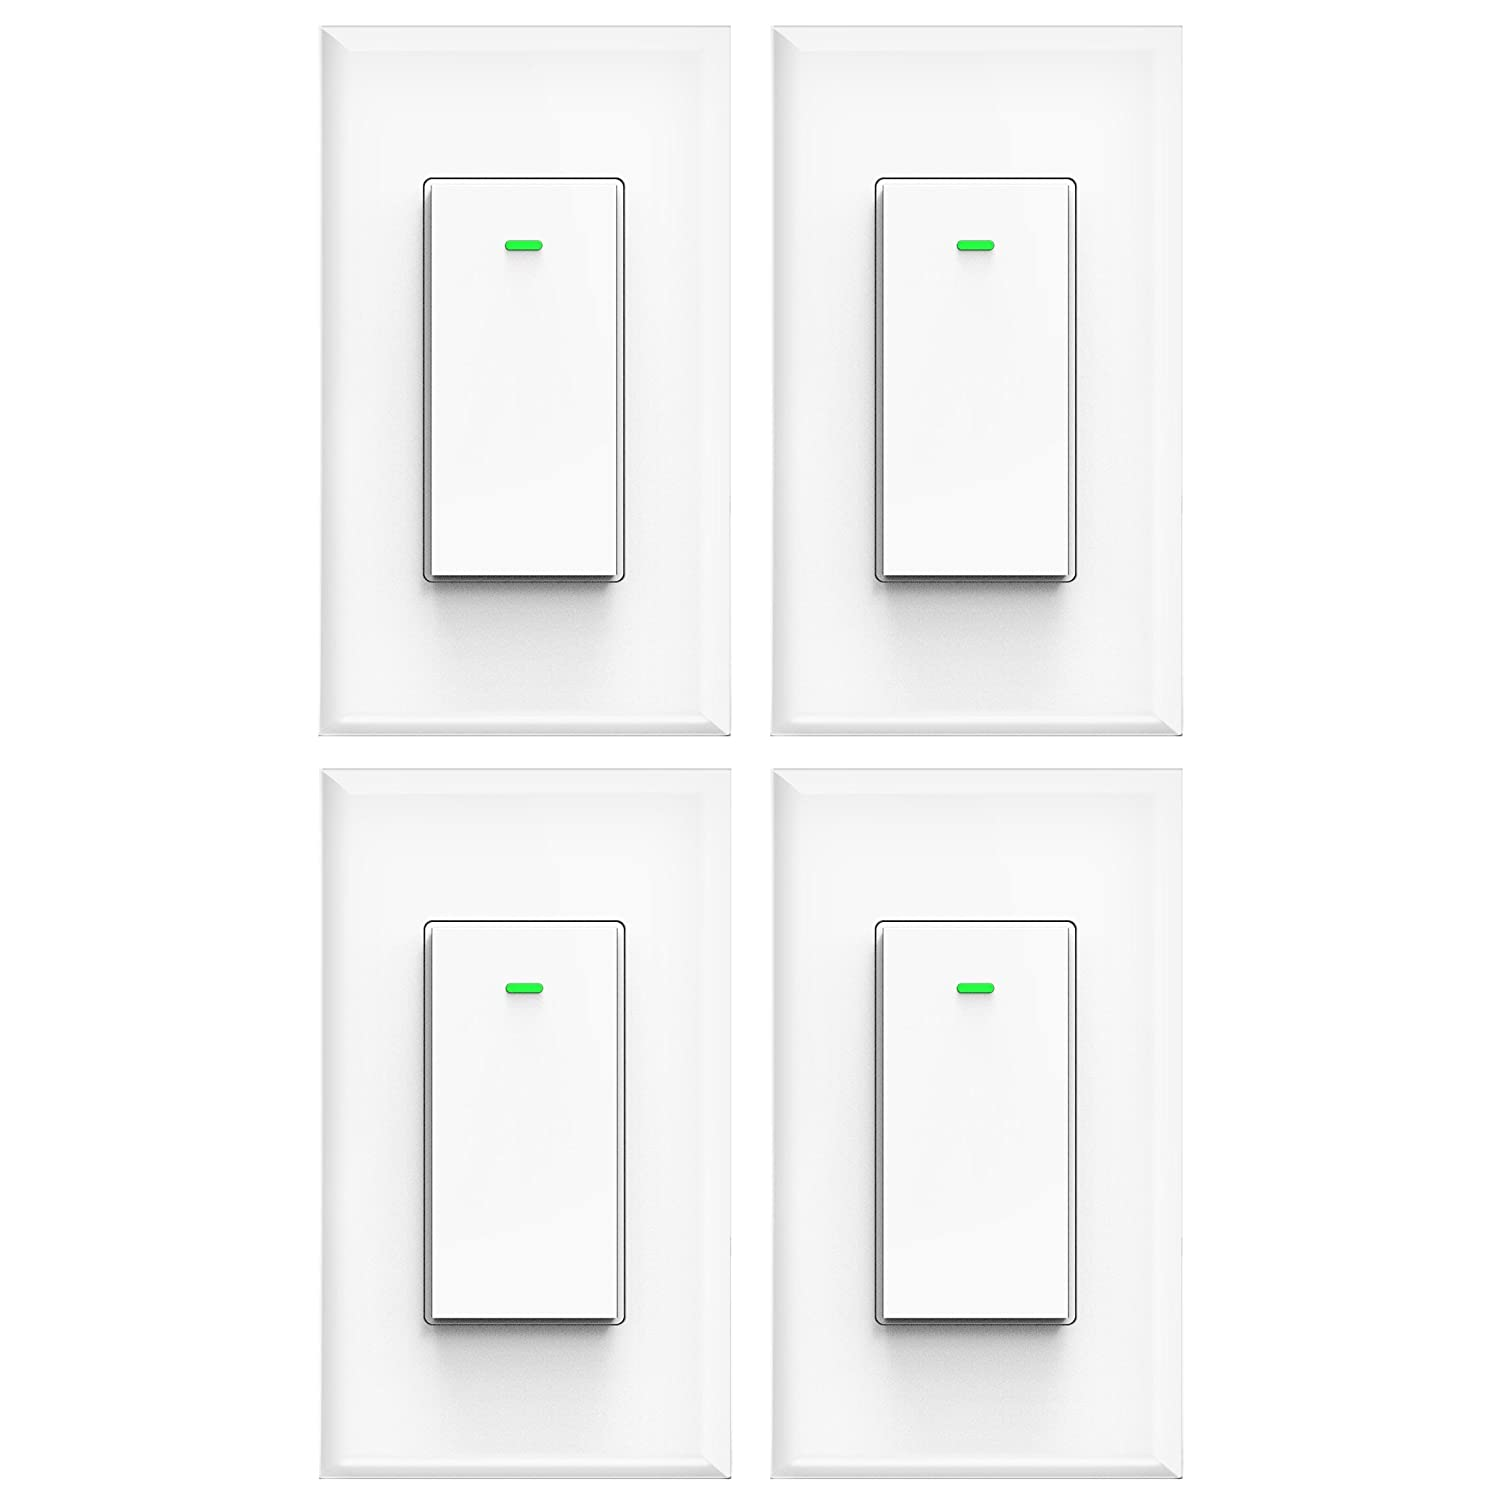 Smart Light Switch, Wifi Light Switch No Hub Required, Phone Remote Control Wireless Decora Switch, Requires Neutral Wire, Timing Schedule, Compatible with Alexa and Google Home Kuled K36 (4pack)